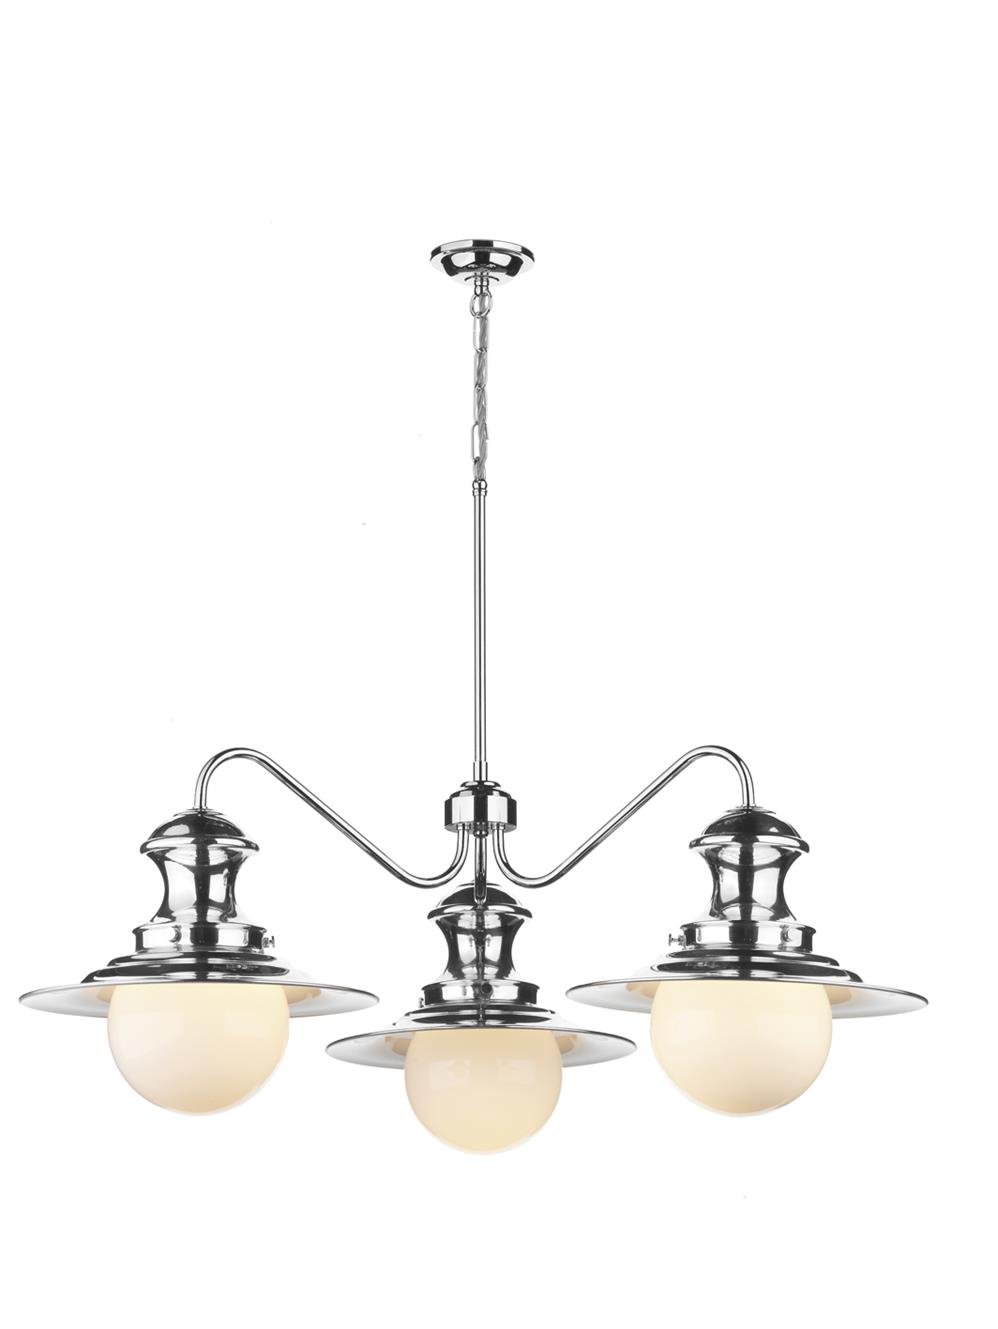 David Hunt Lighting EP5350 Station 3 Light Pendant in Chrome